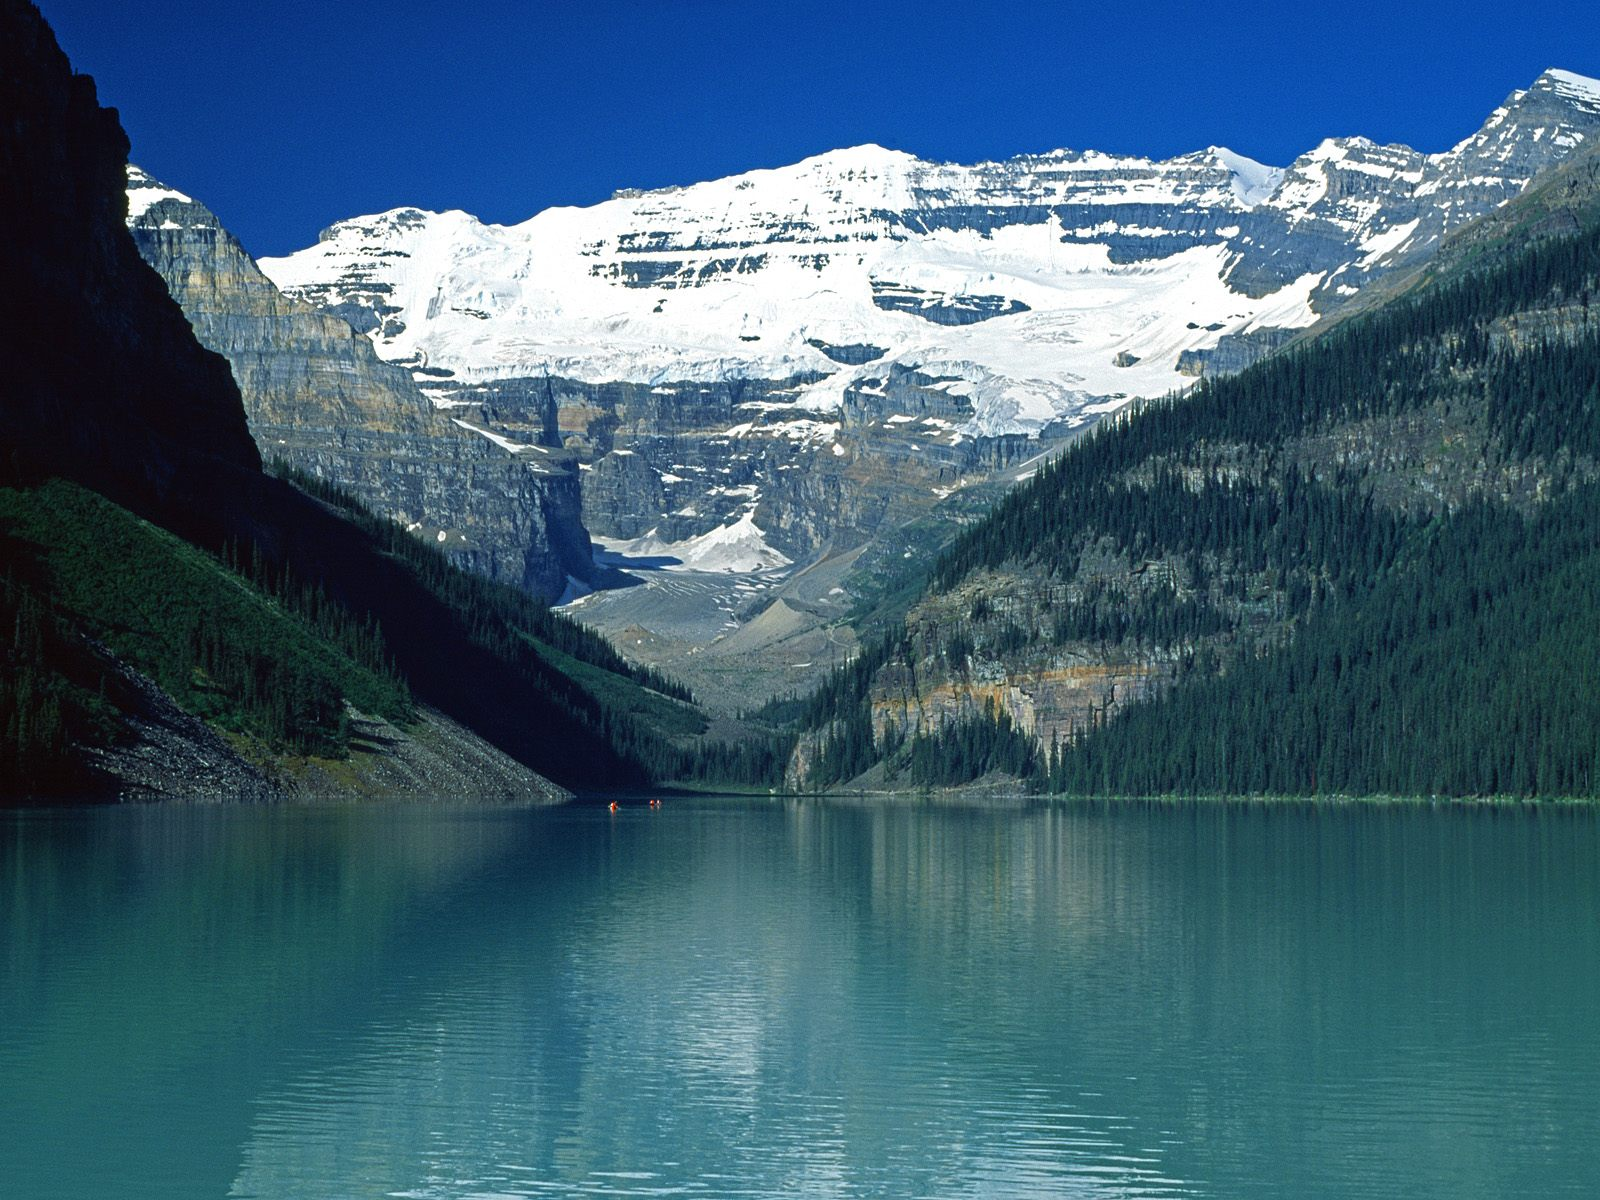 Lake Louise Canadian Rockies photo or wallpaper